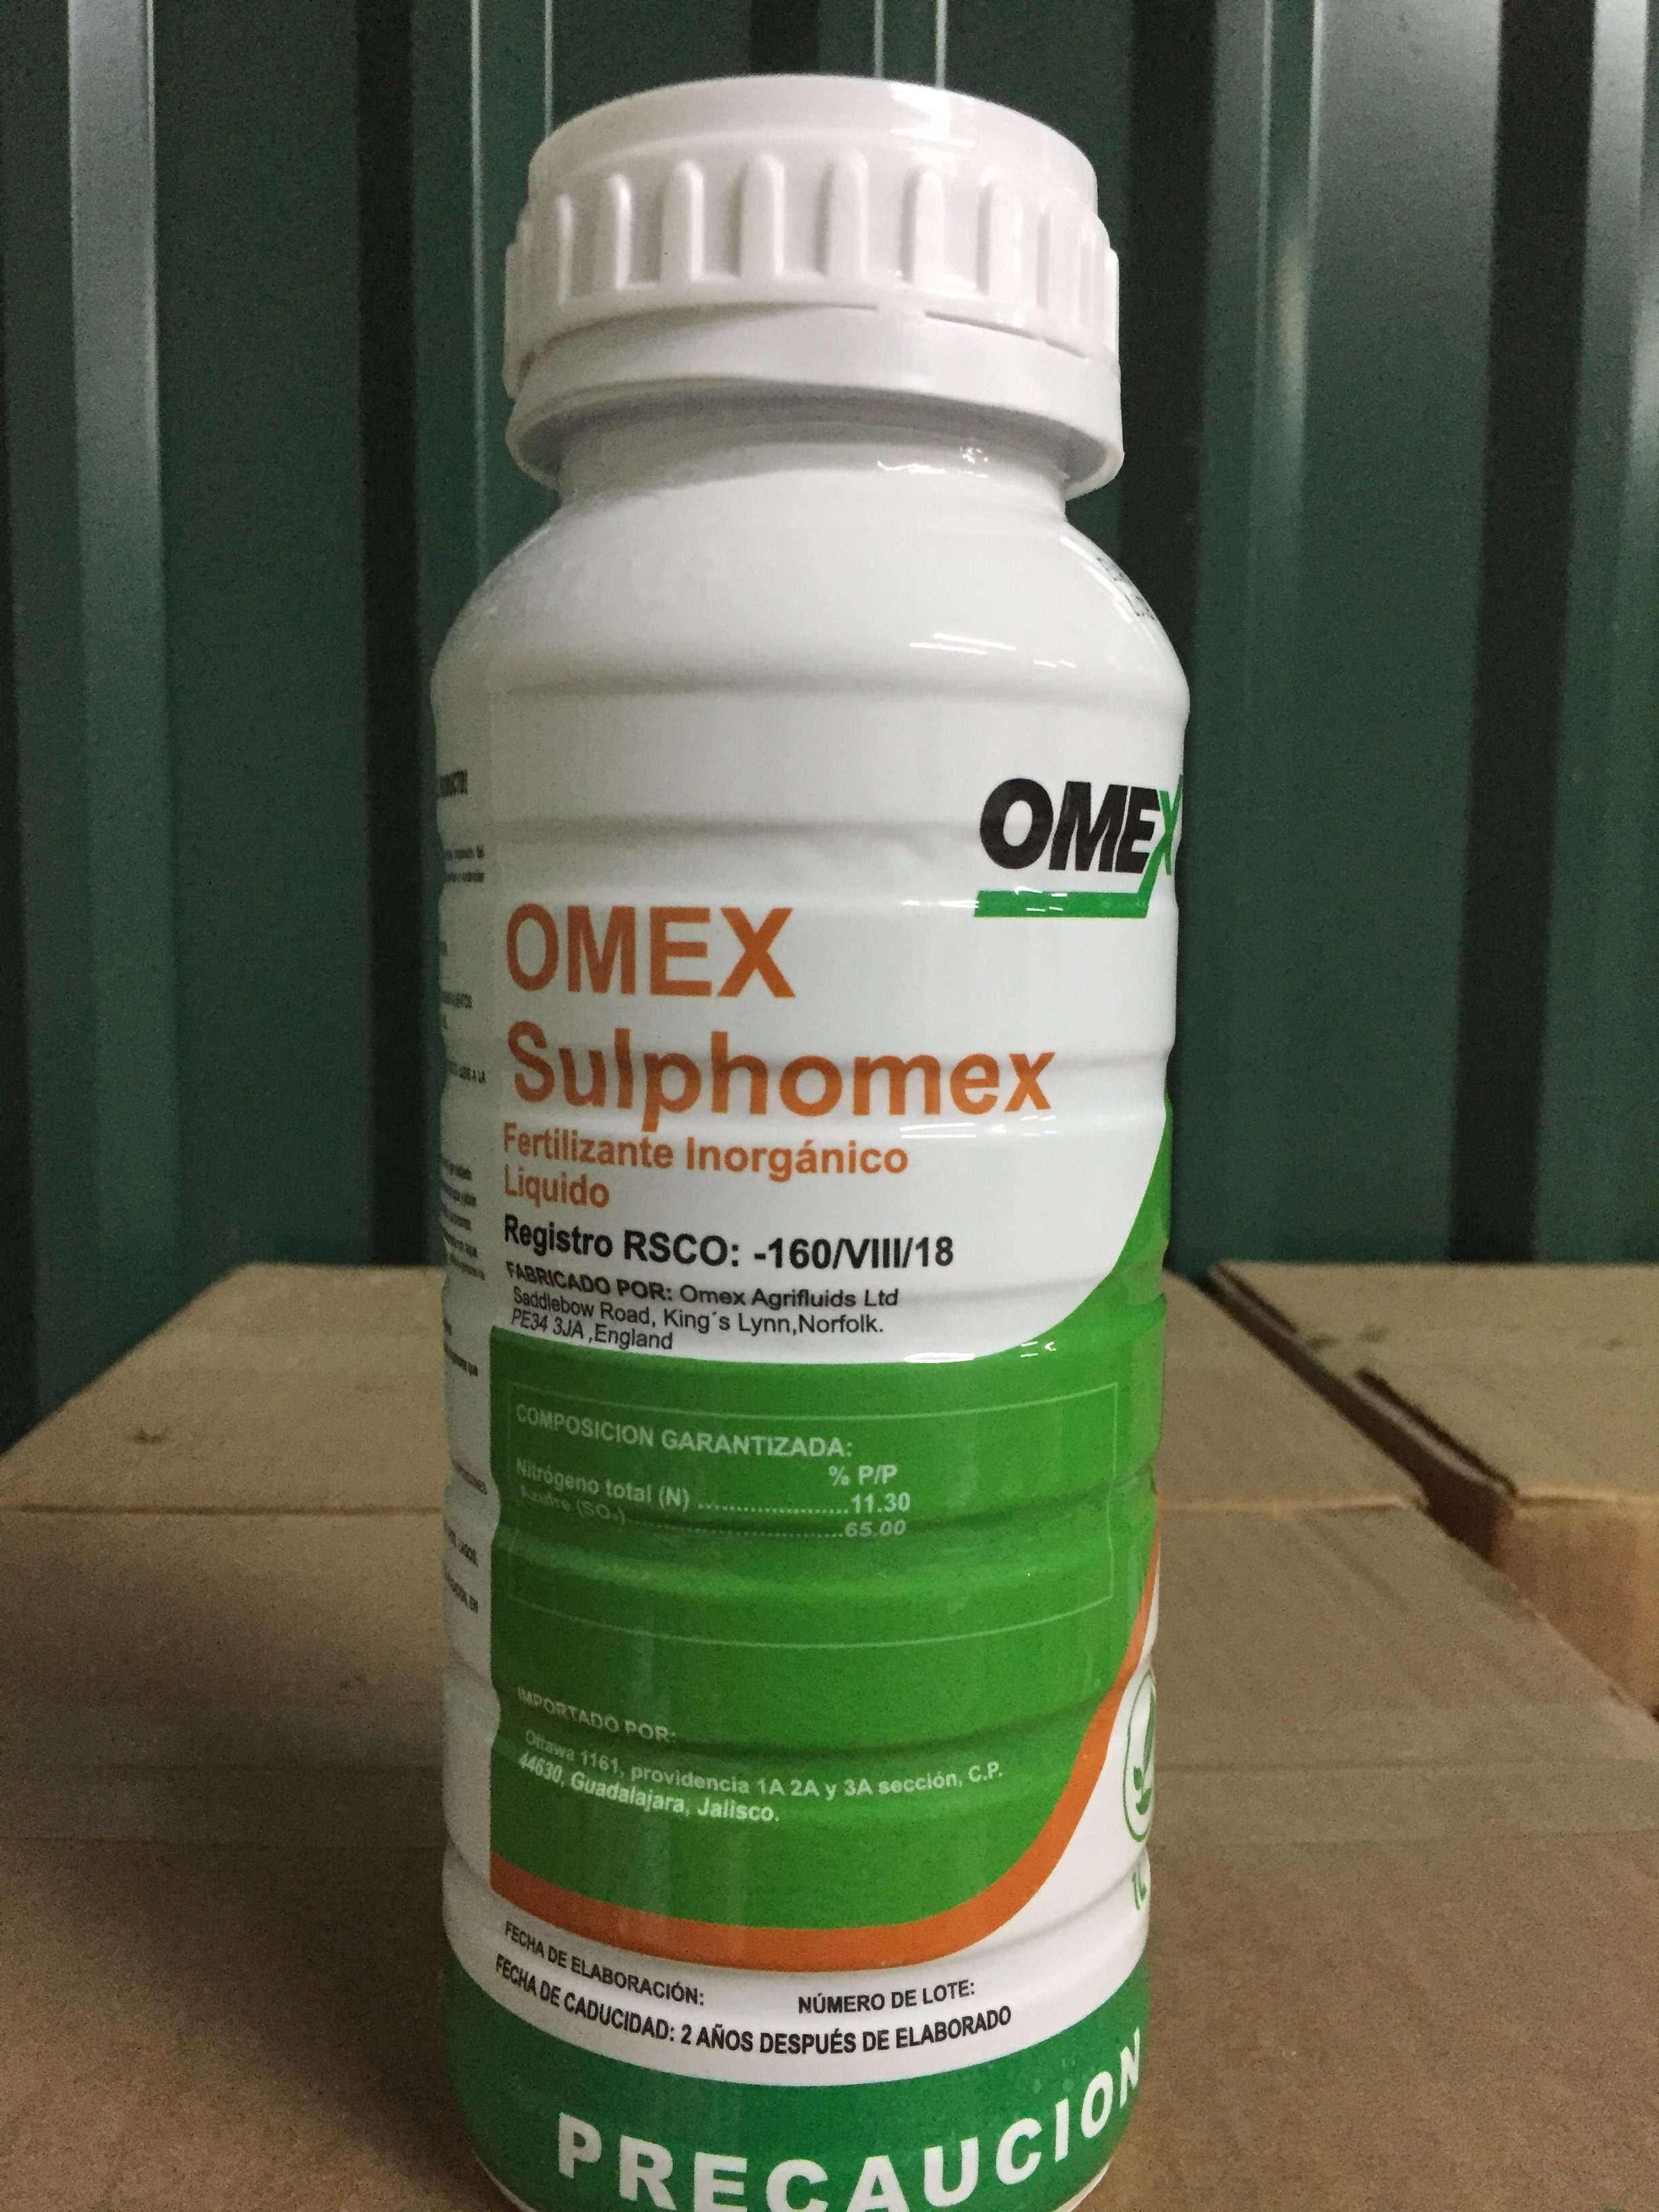 Omex Sulphomex